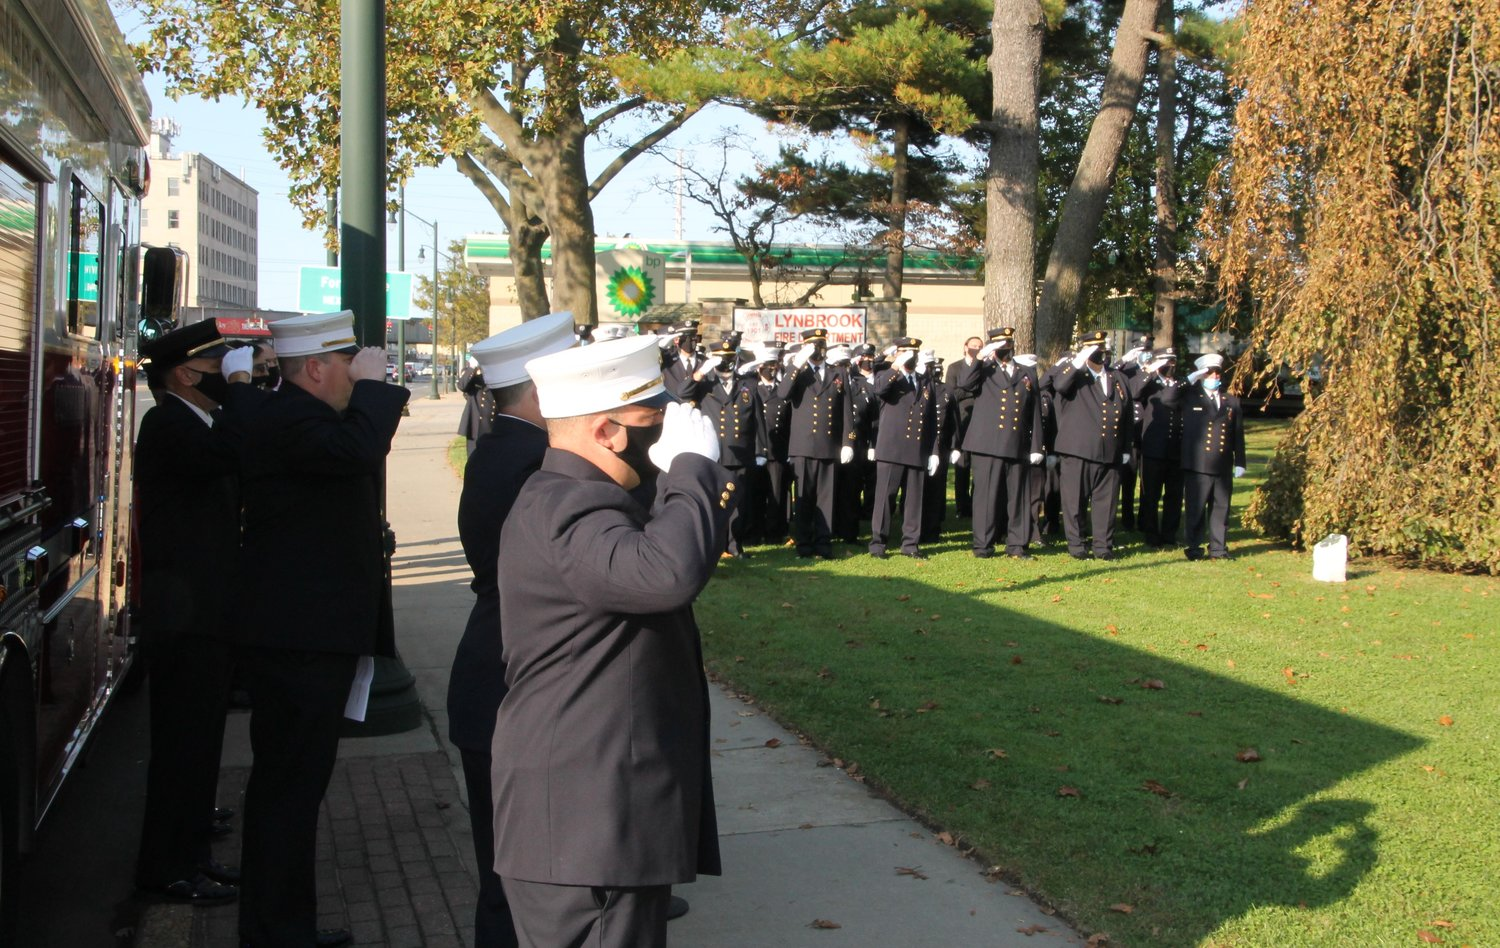 The firefighters saluted the memorial.